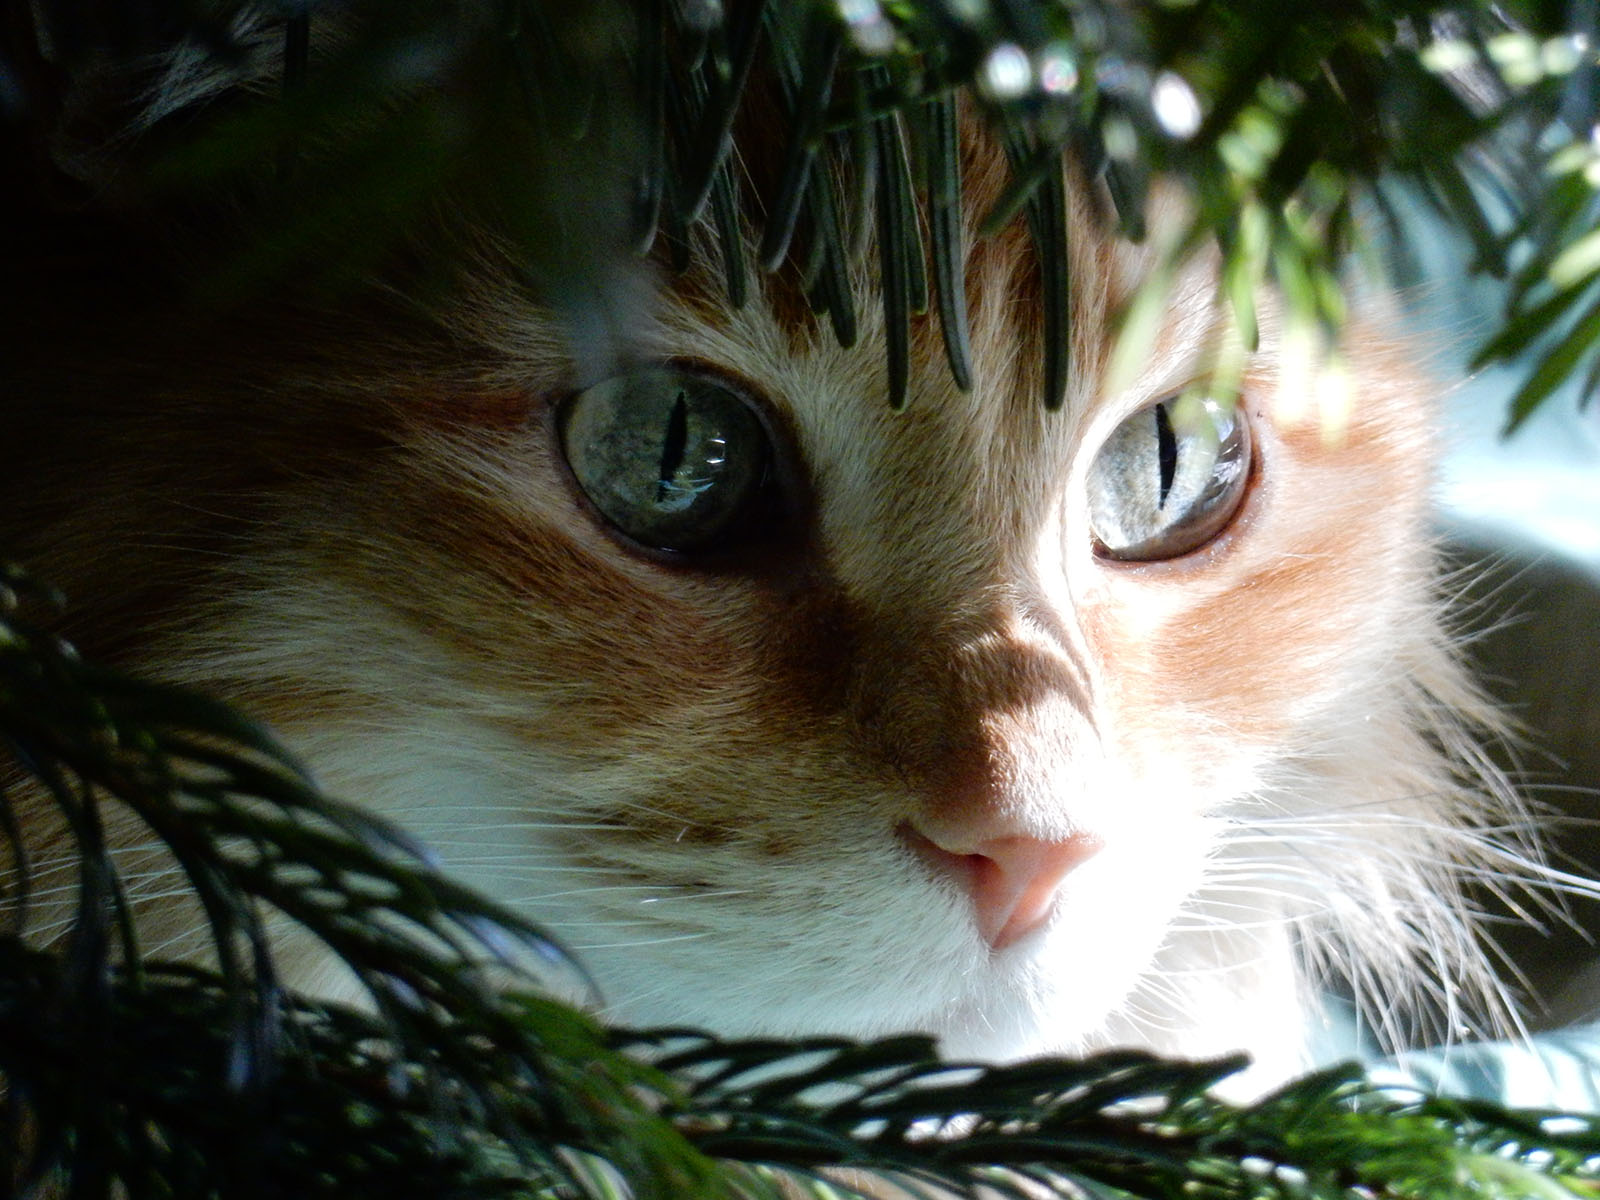 Andy took this picture of Sean under the Christmas tree in December of 2015.